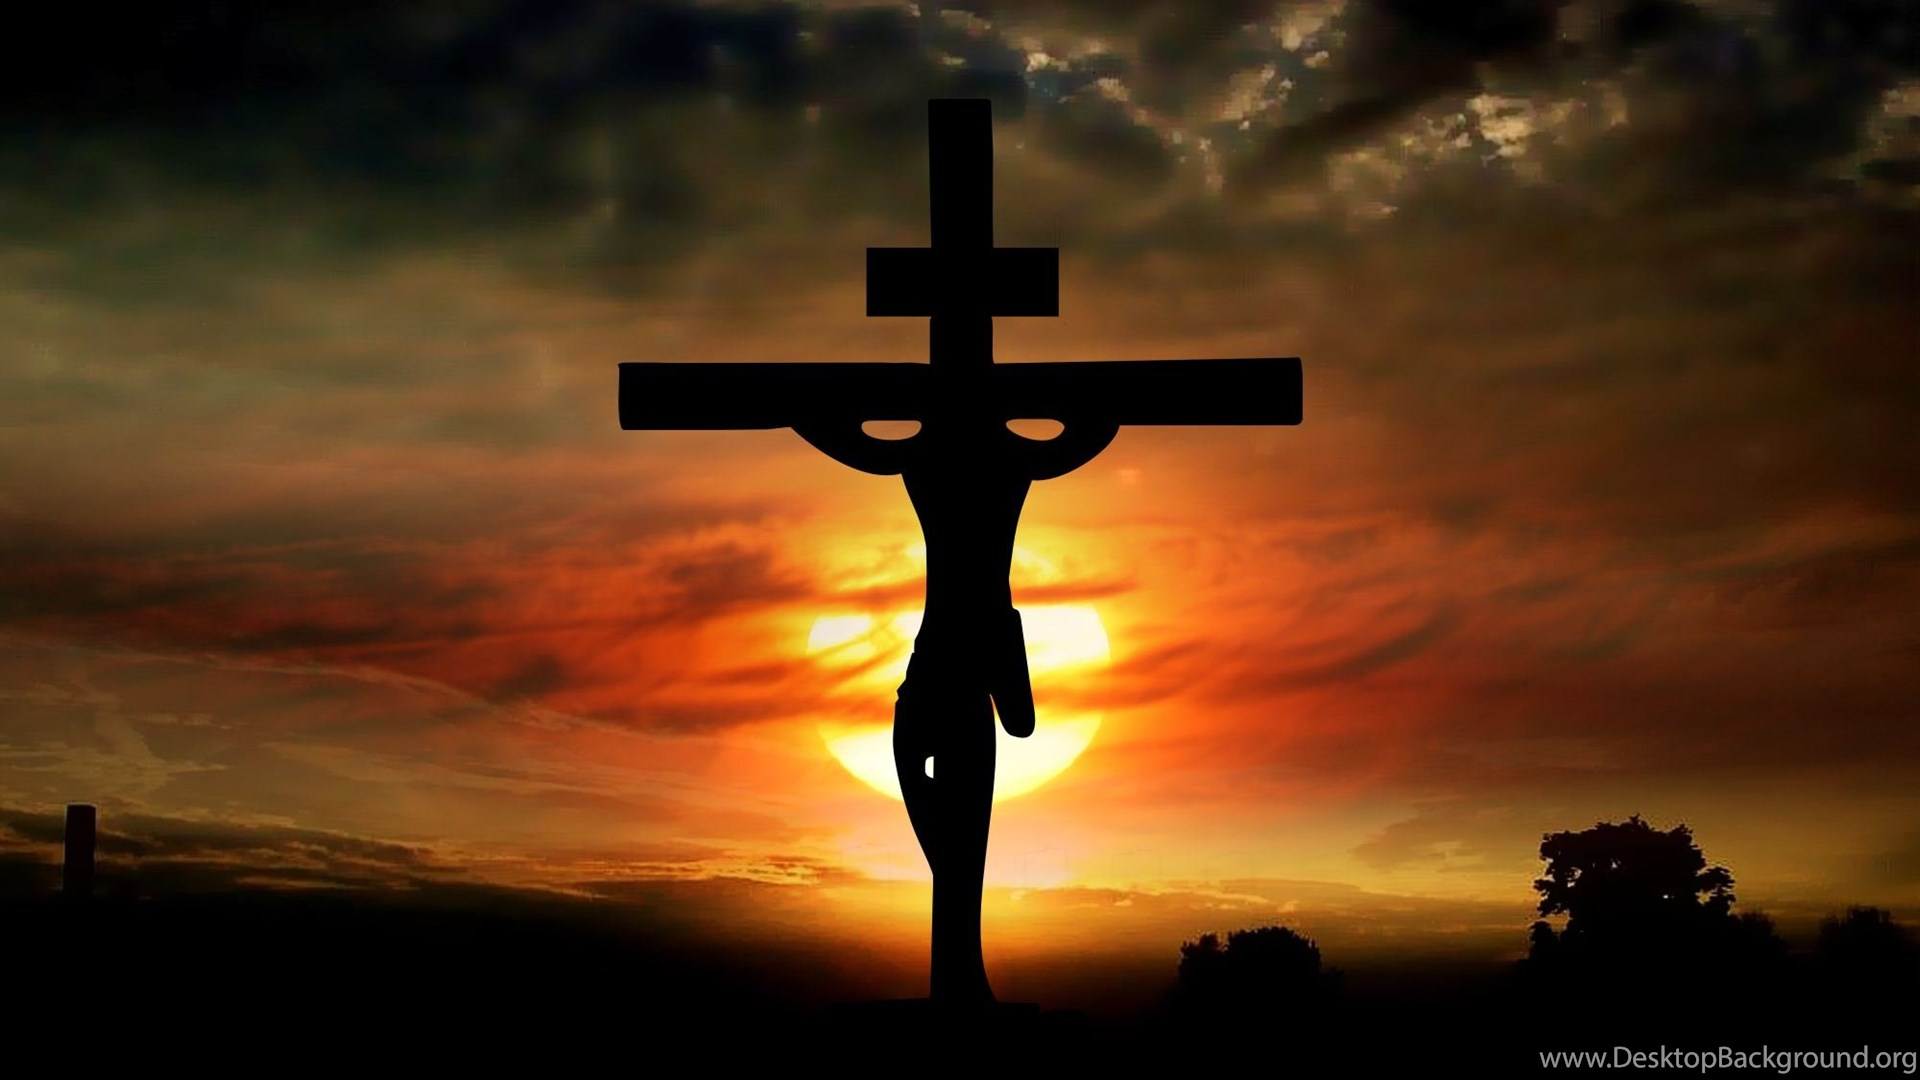 Other wallpaper jesus cross iphone wallpapers wallpapers hd popular voltagebd Choice Image